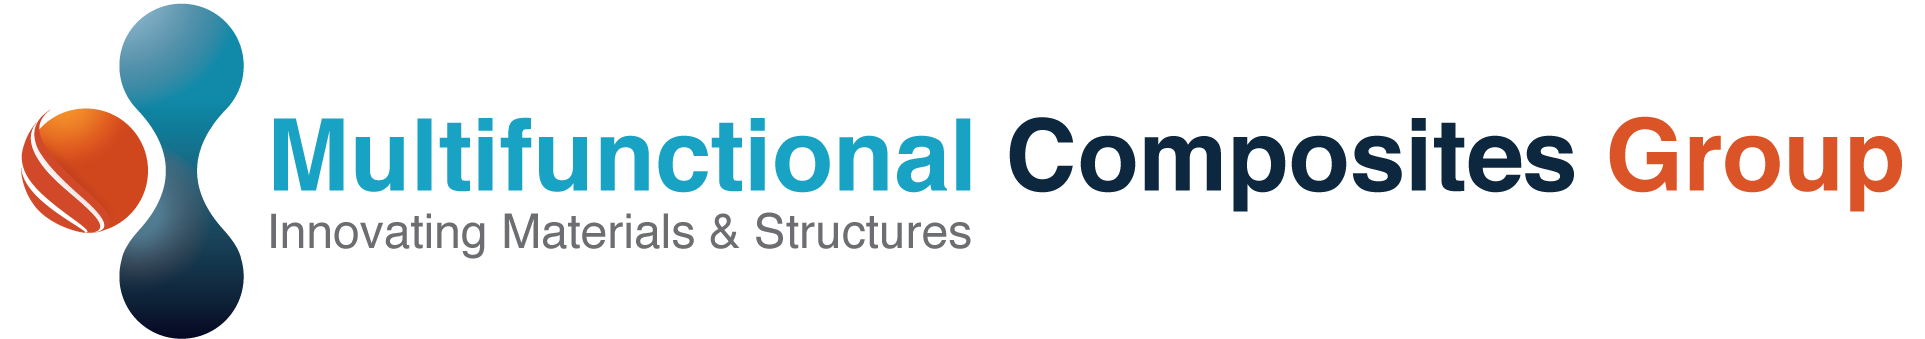 Multifunctional Composites Group